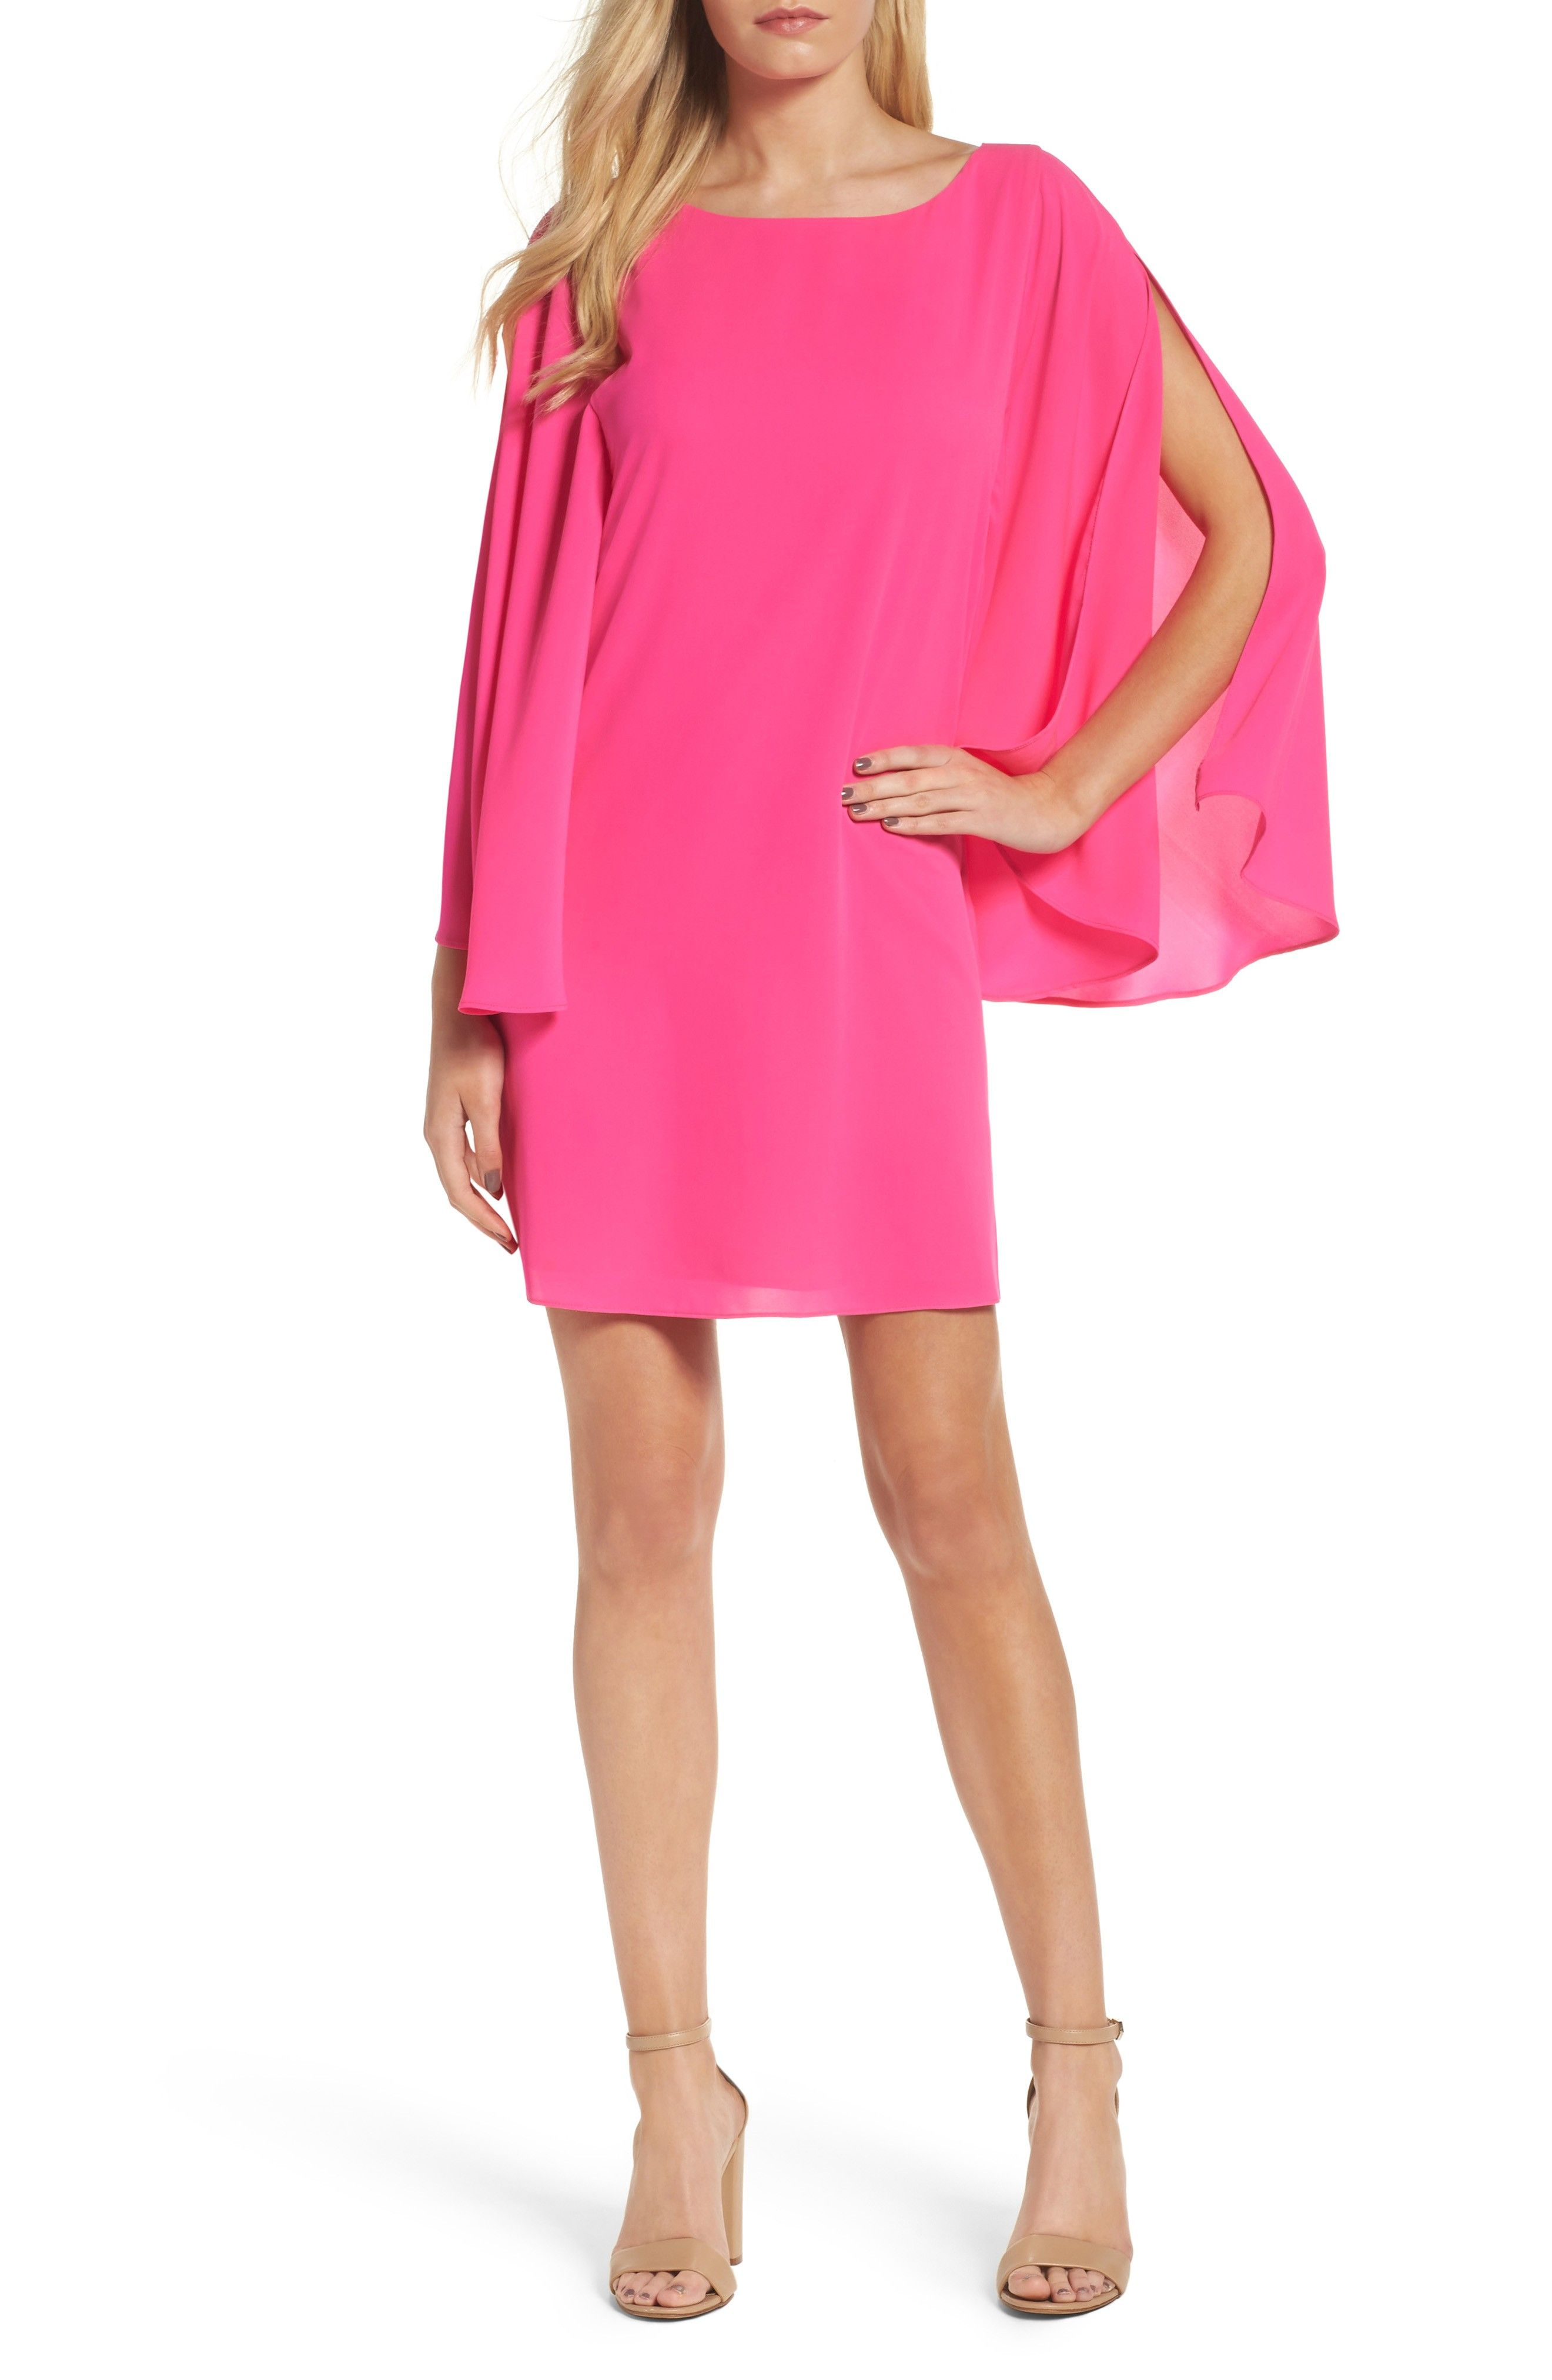 Best color dress to wear to a wedding  Shop this weekus  Best Summer Vacation Styles including styles